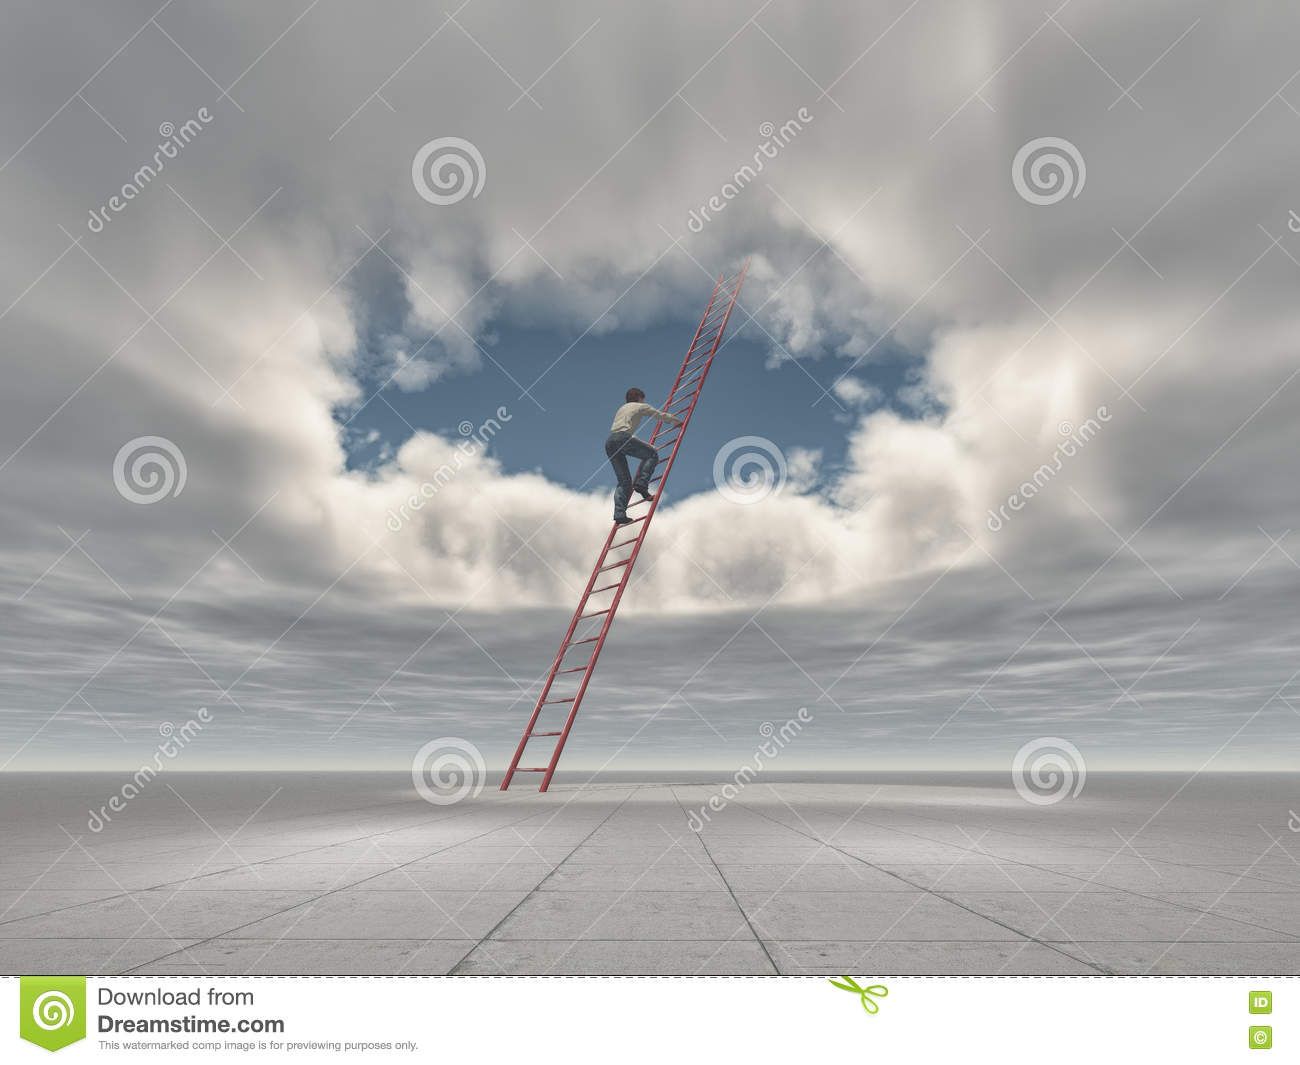 Man climb a ladder to a hole in the sky